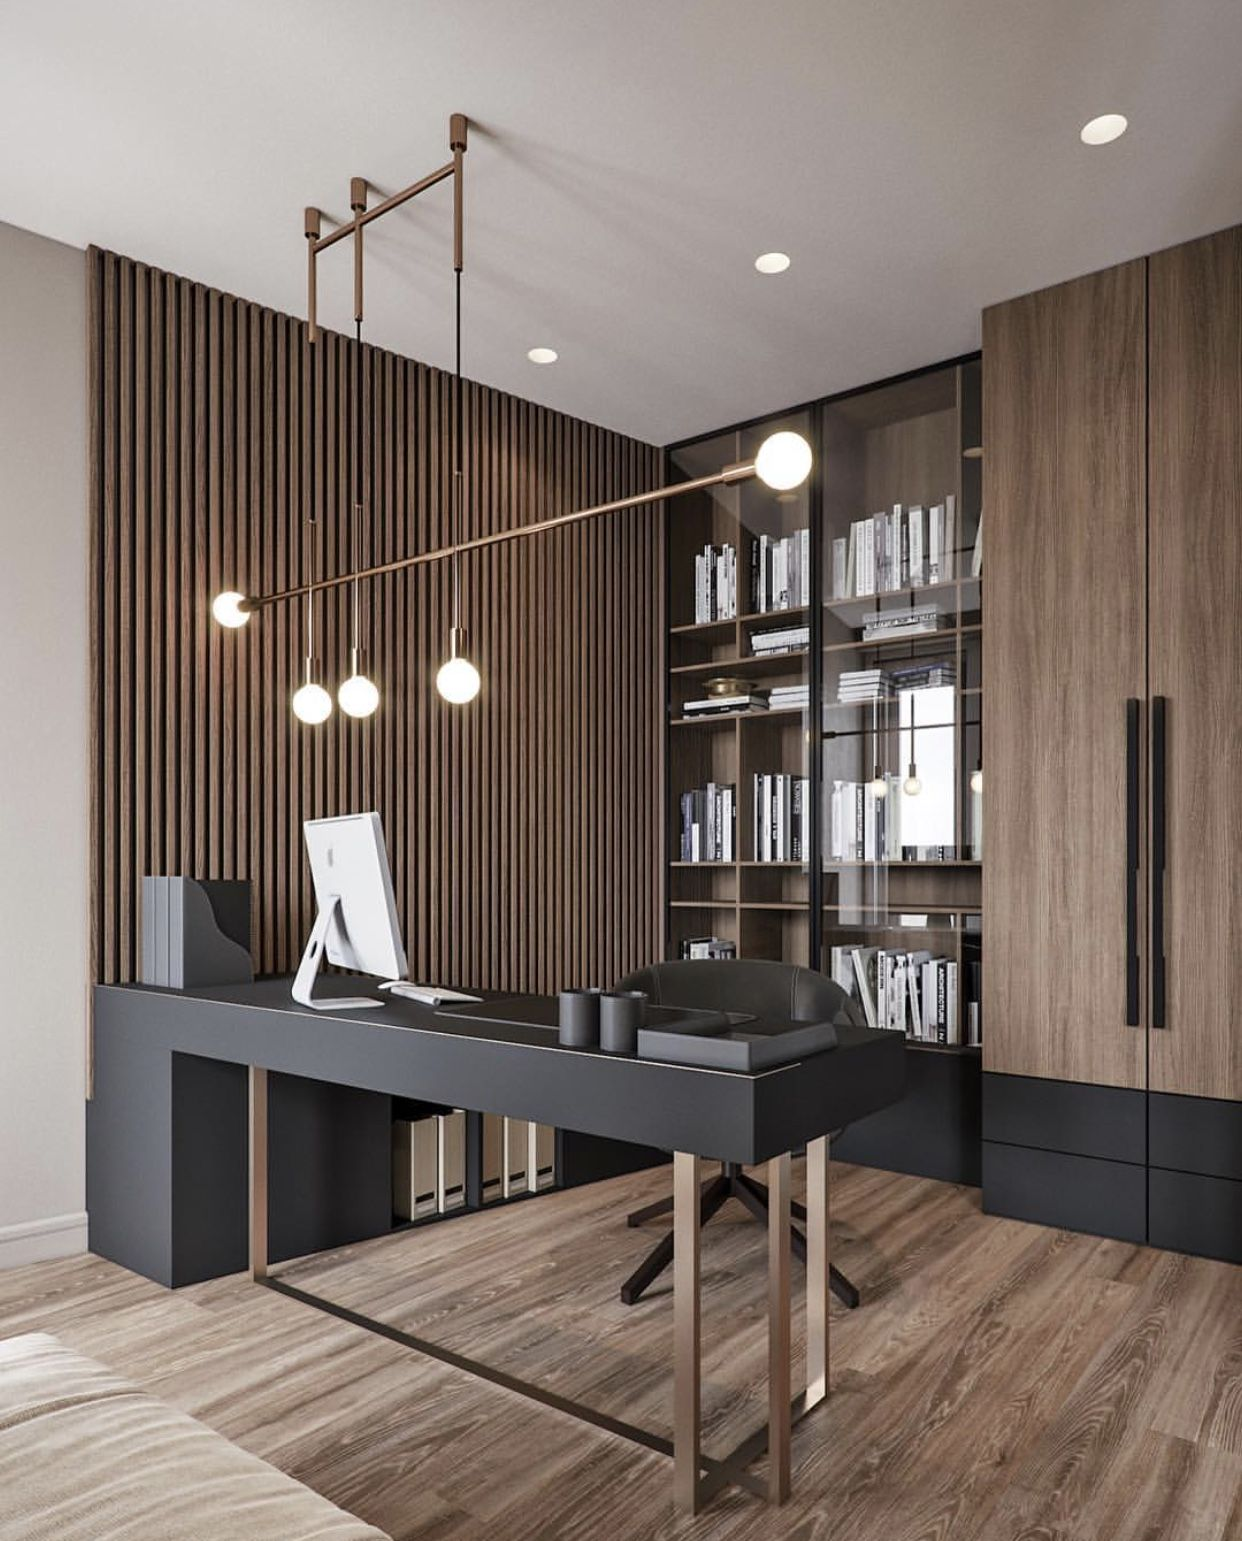 I Know It Is Not The Kitchen Pic But I Like The Brown Wood